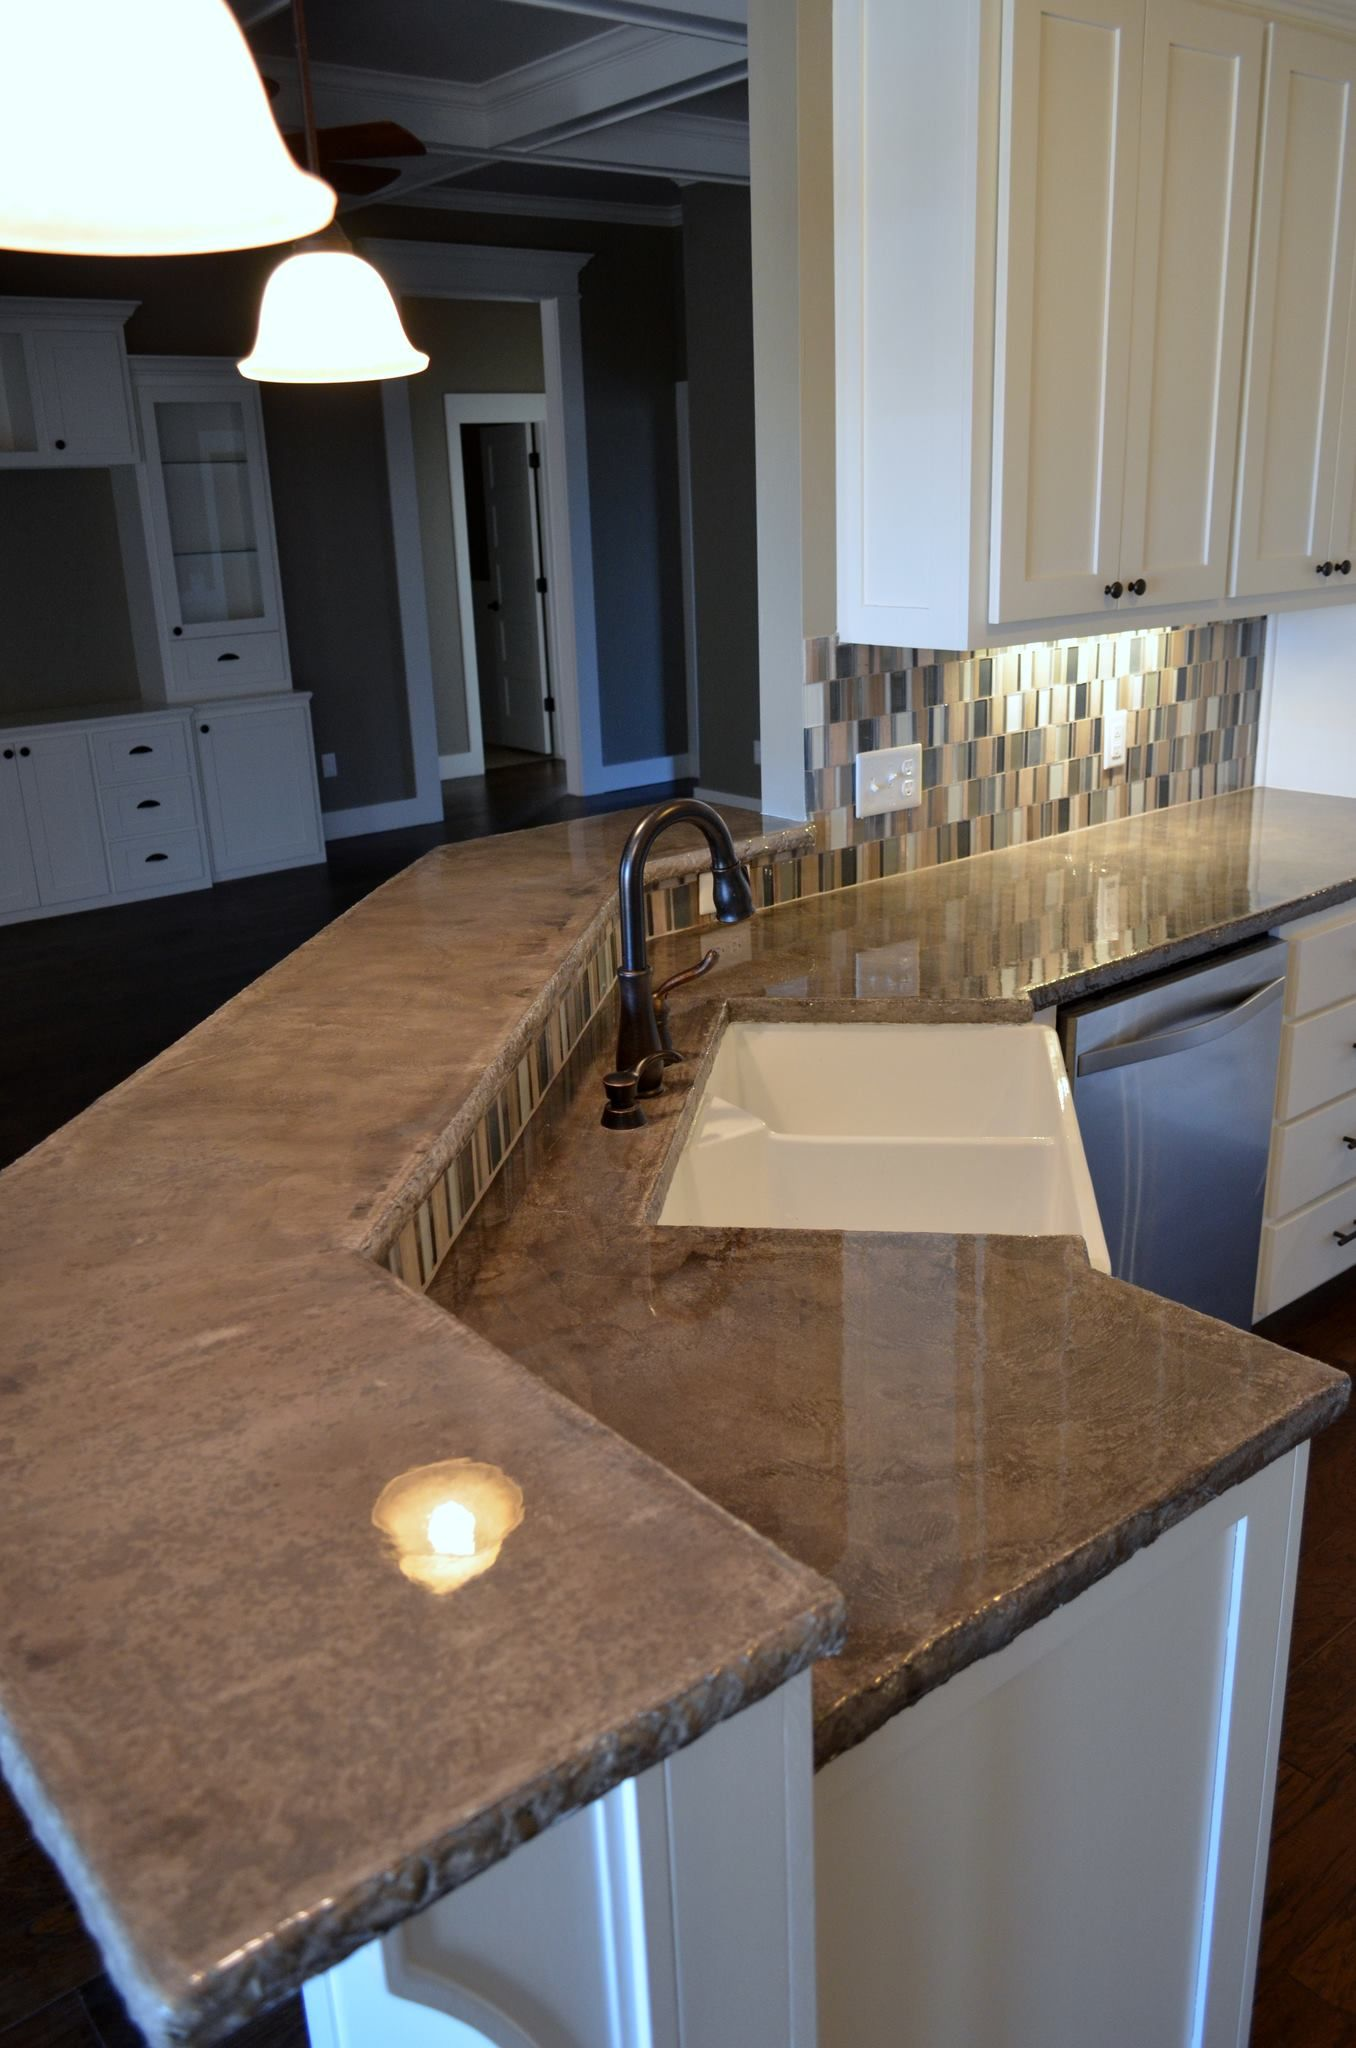 harden kitchen plans concrete countertops and dry surface up set to